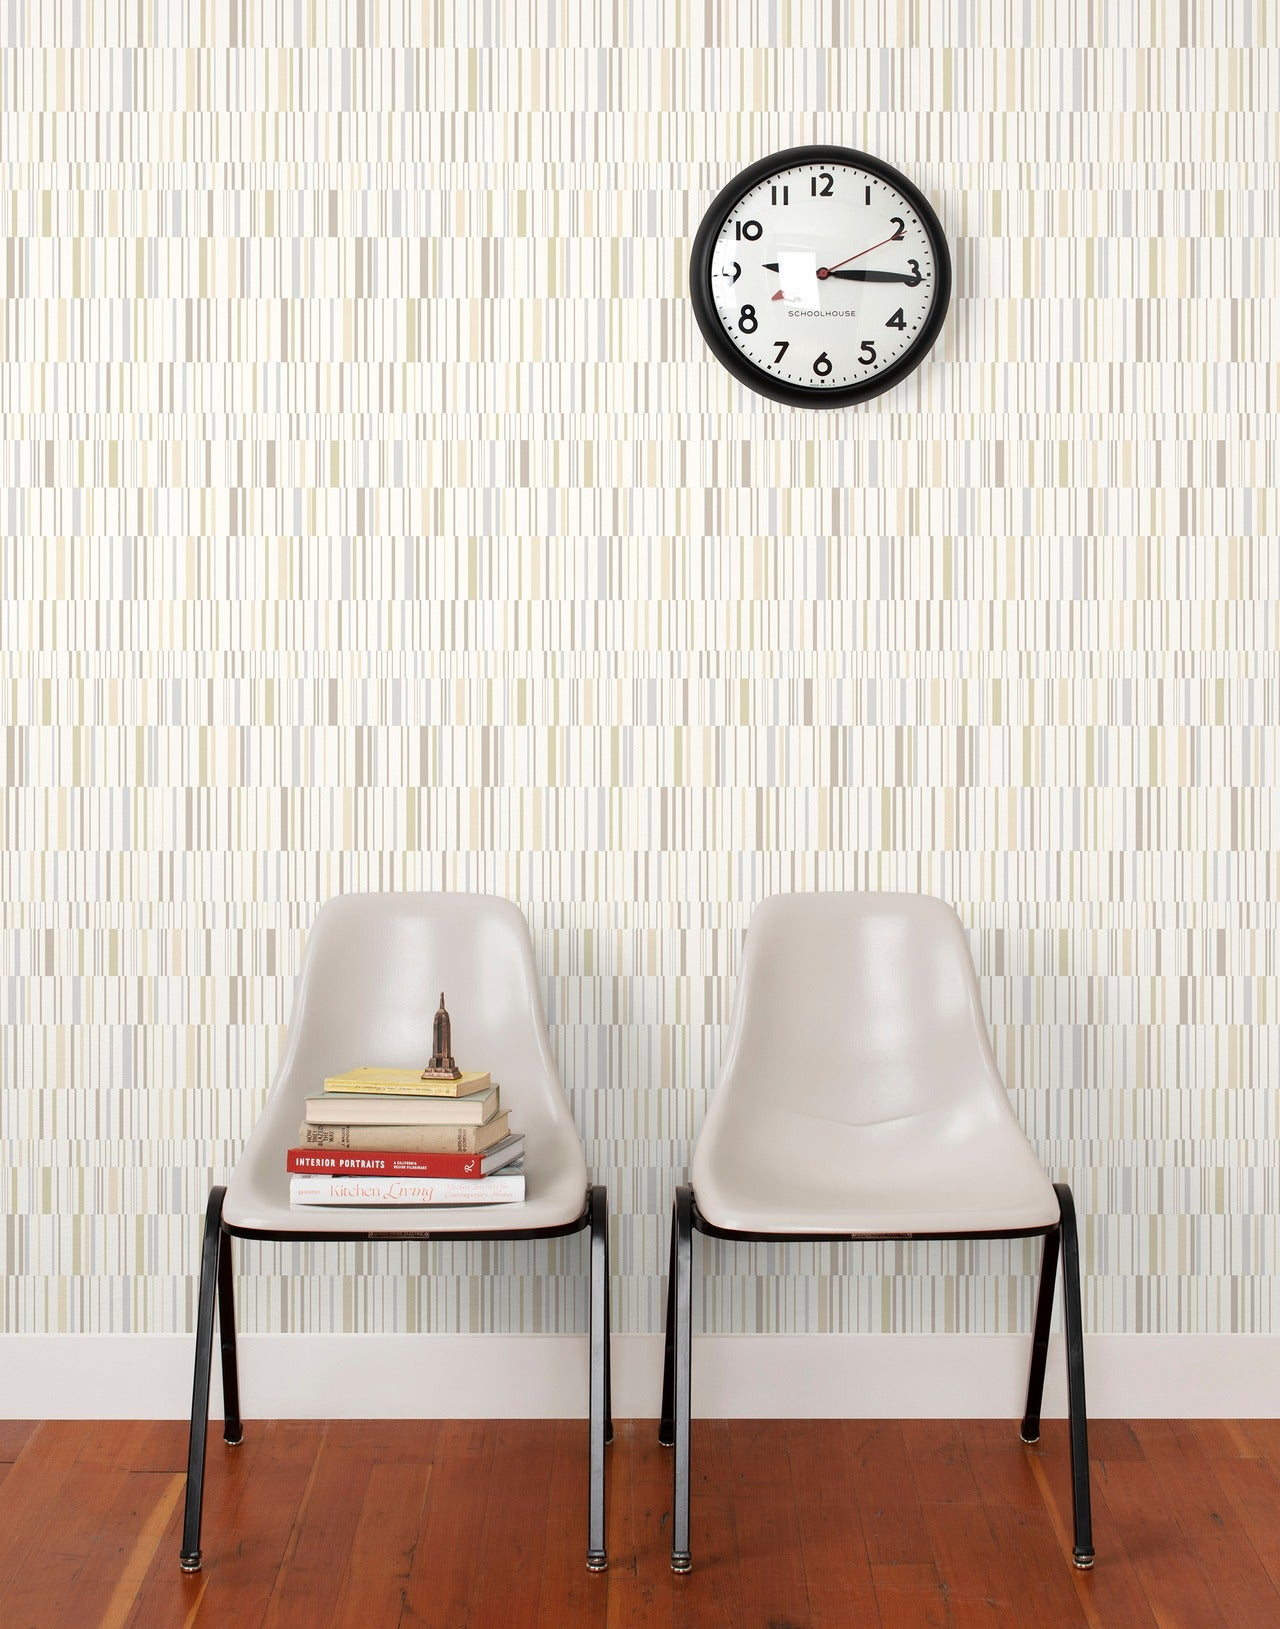 Match wallpaper in White by Schoolhouse + Hygge & West